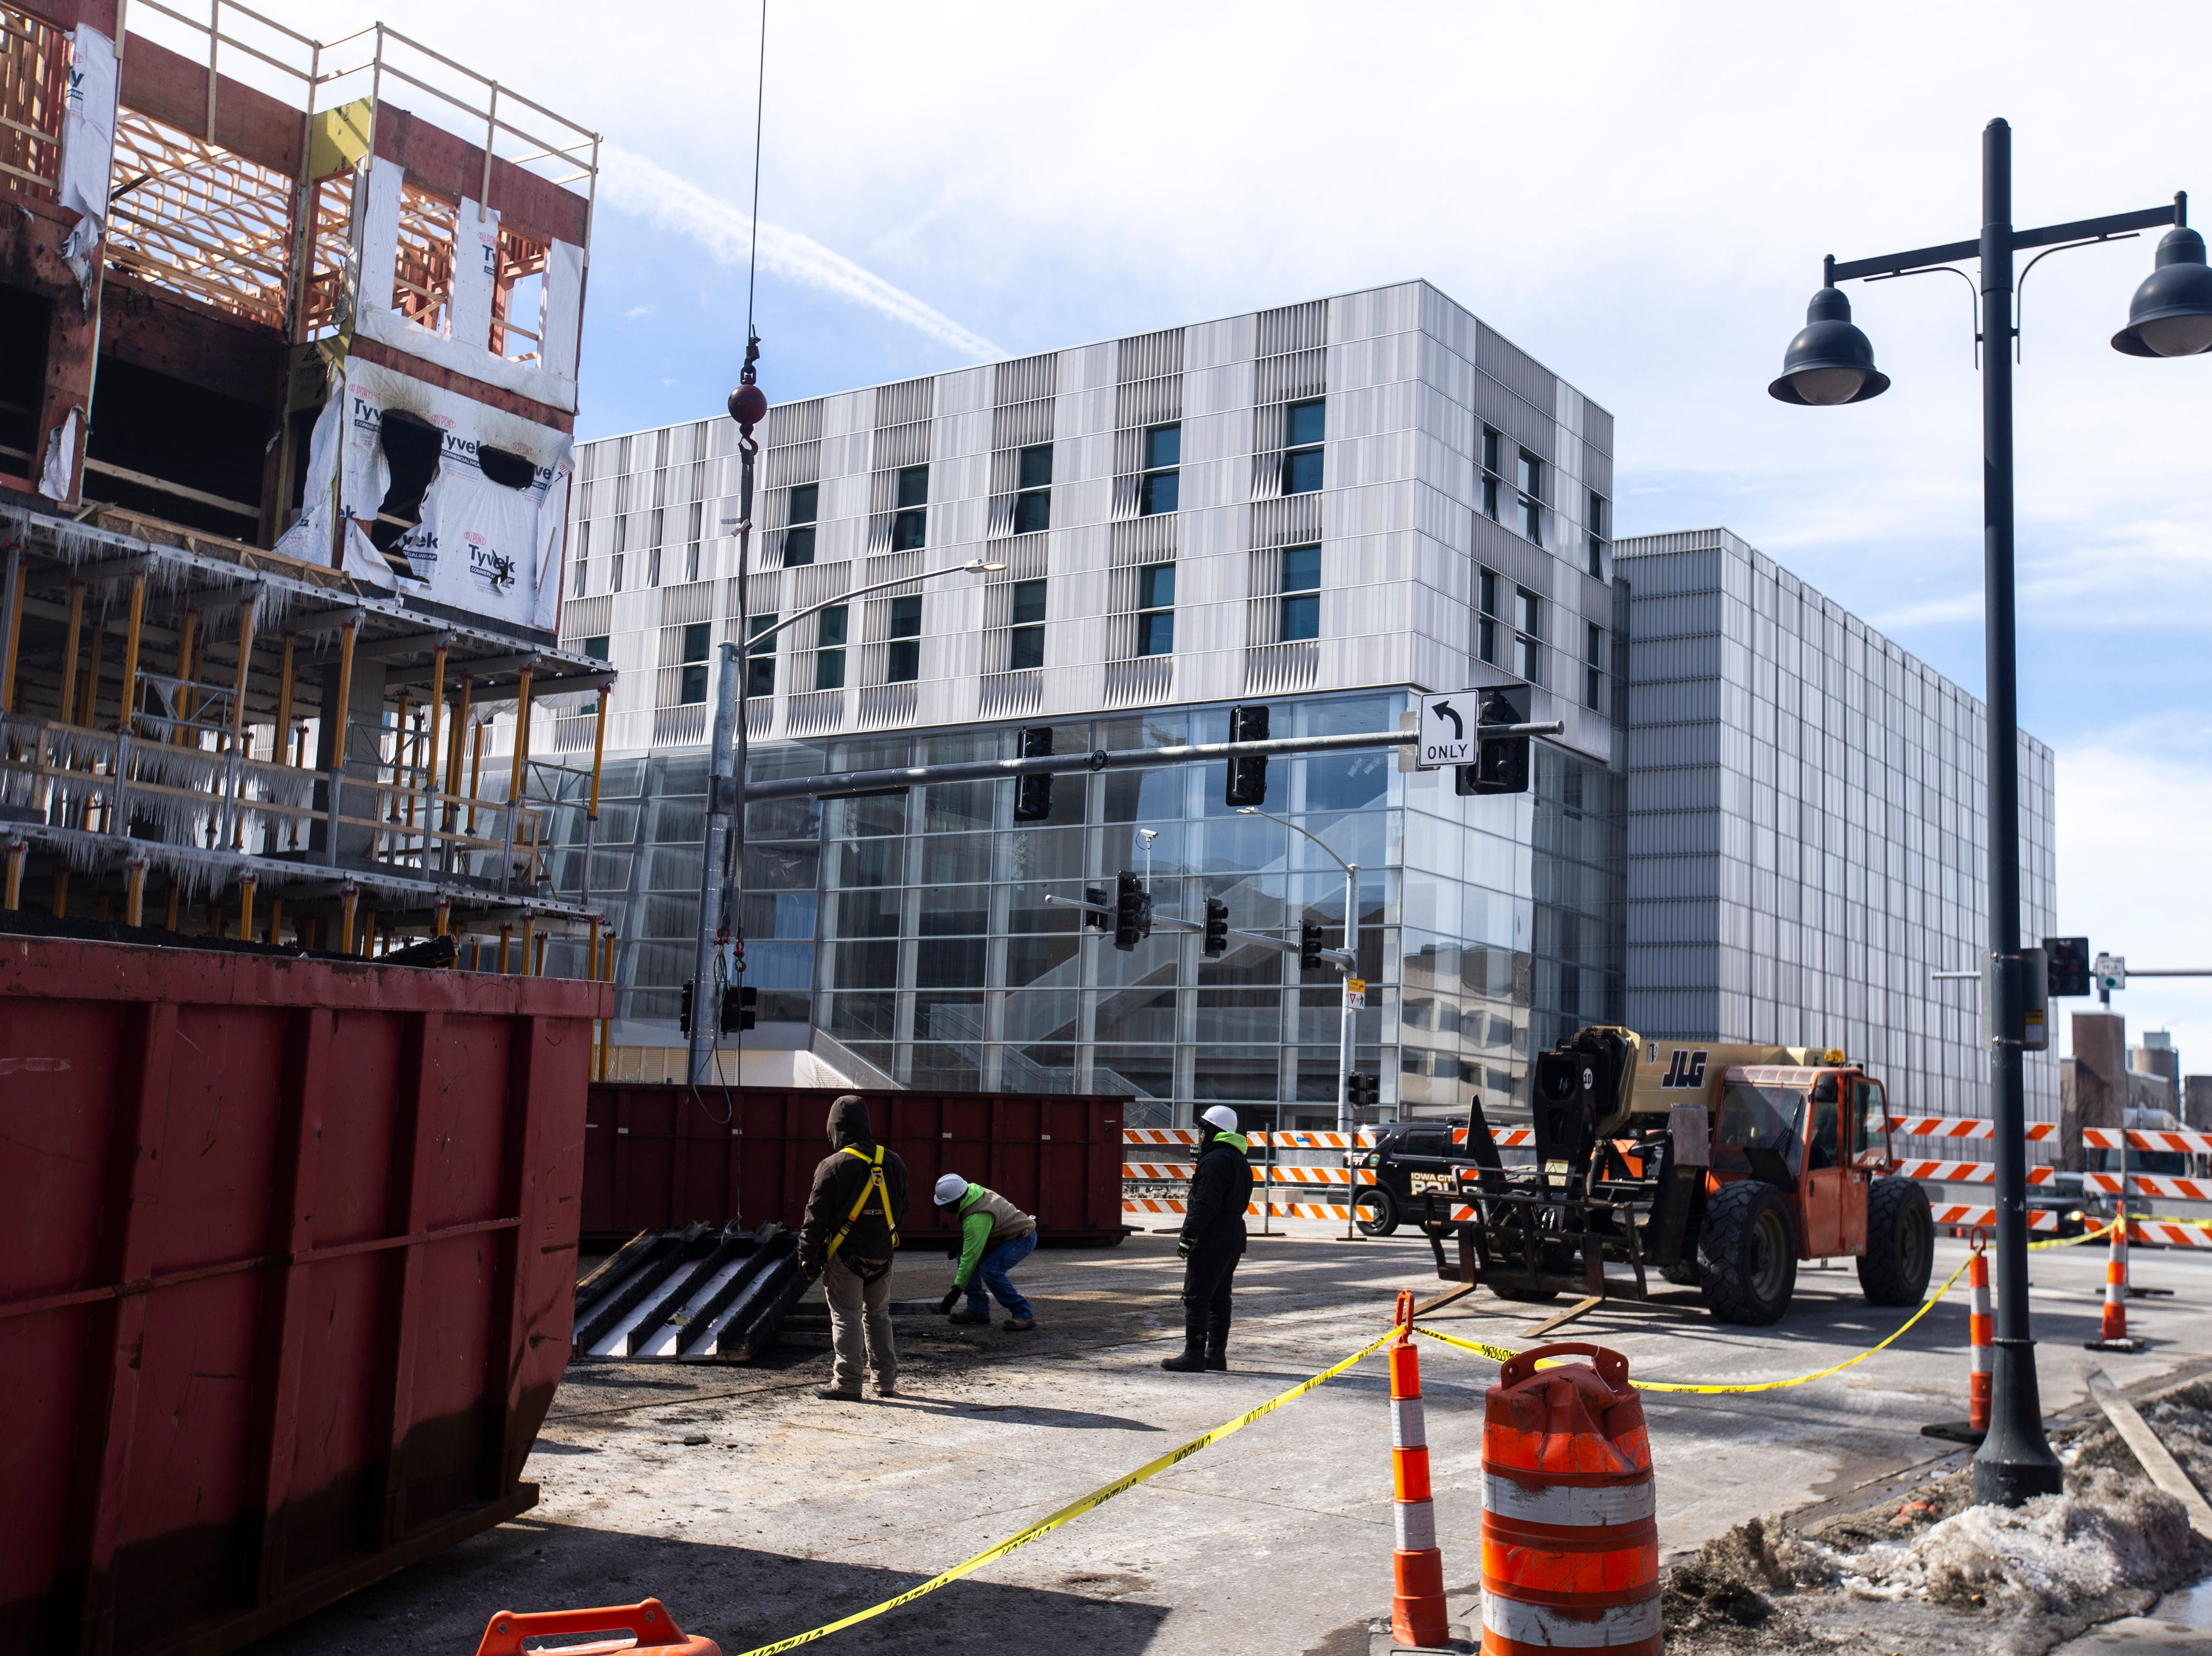 Workers begin to take down fire damage at the Hieronymous Square construction site on Wednesday, March 6, 2019, at 314 S. Clinton Street in downtown Iowa City, Iowa.